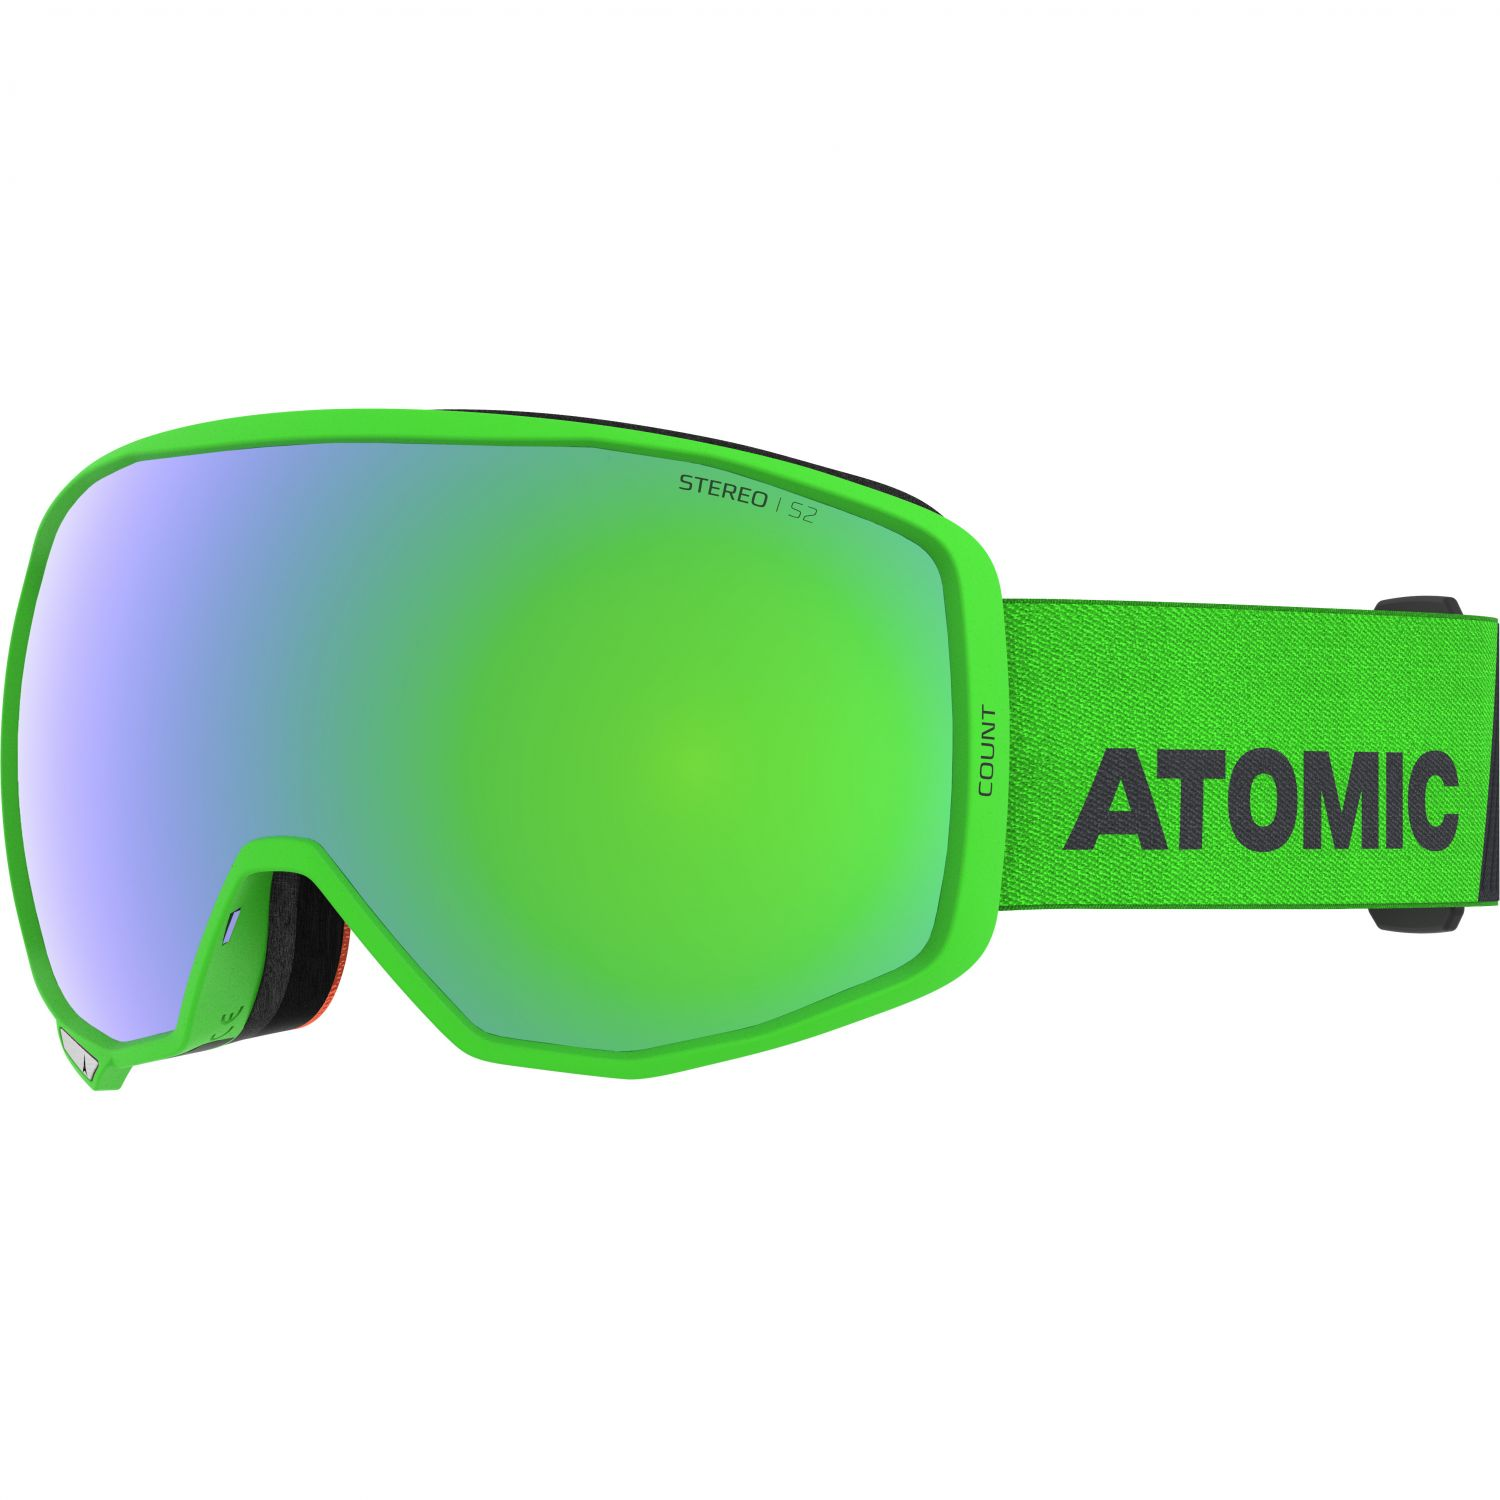 Atomic Count Stereo, Skibriller, Green